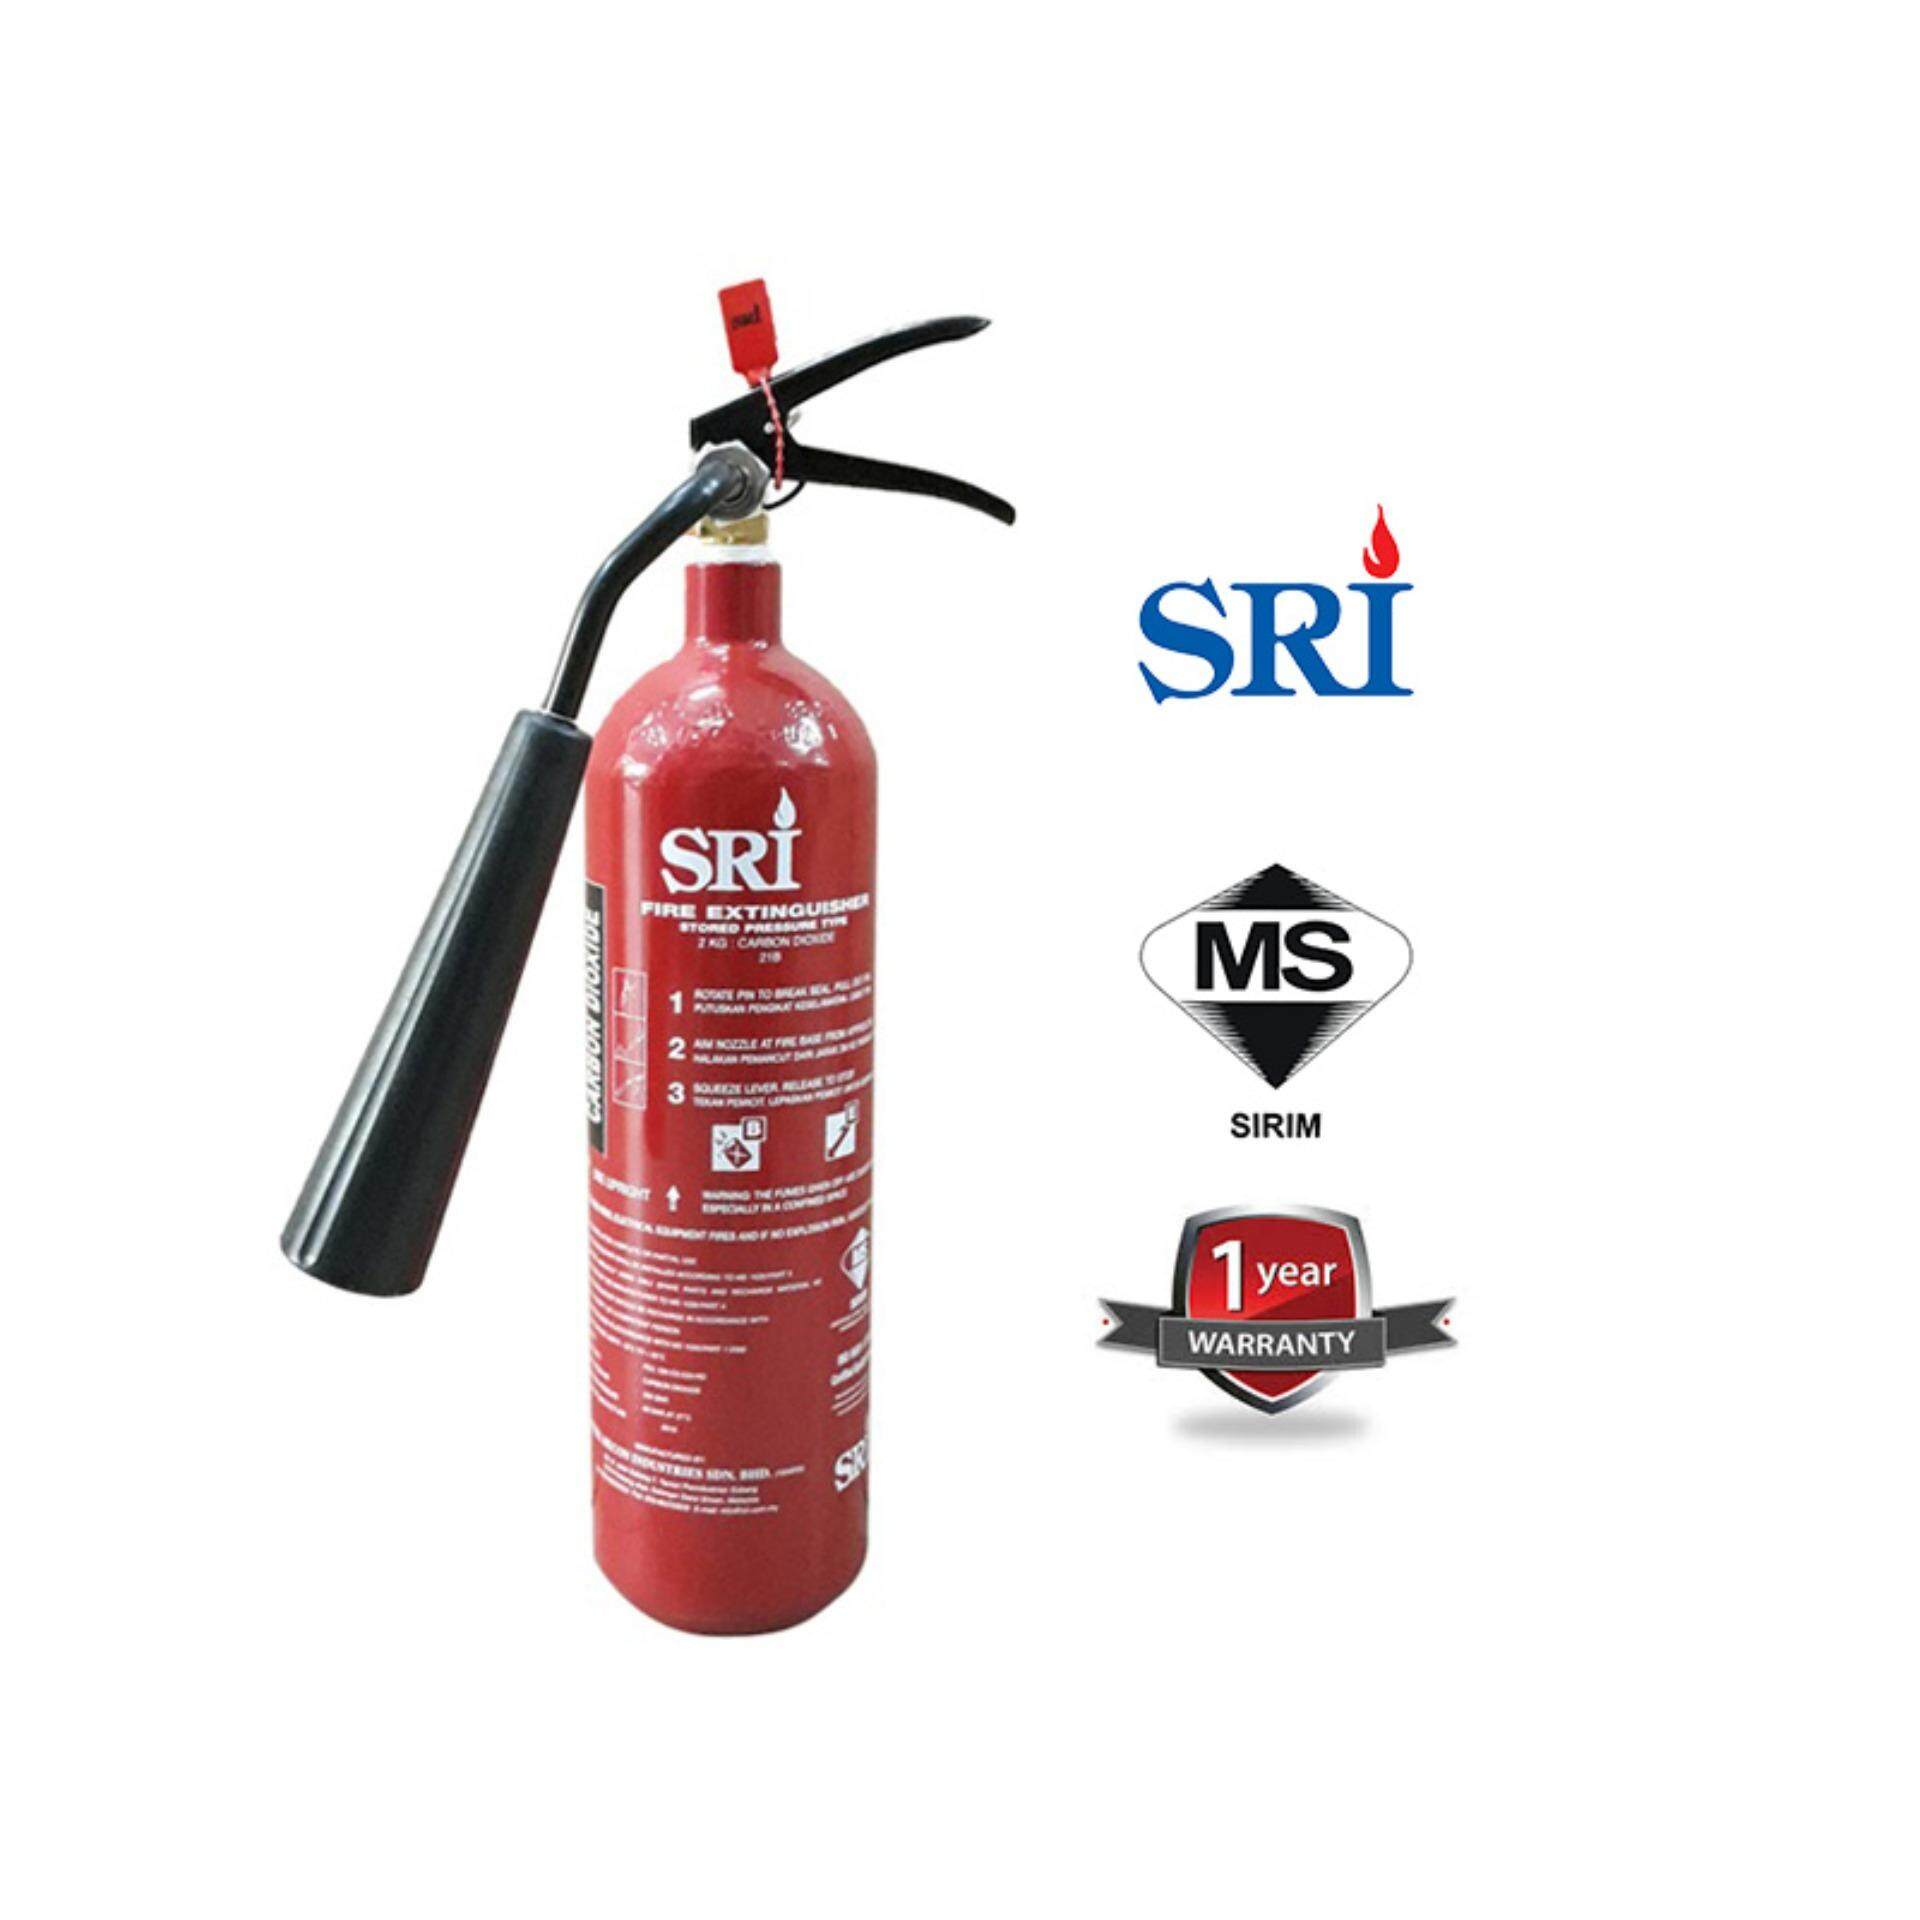 EzSpace Sri 2kg Carbon Dioxide CO2 Fire Extinguisher Sirim Approved Year 2019 Production Suitable For Electrical Board Server Room Pemadam Api